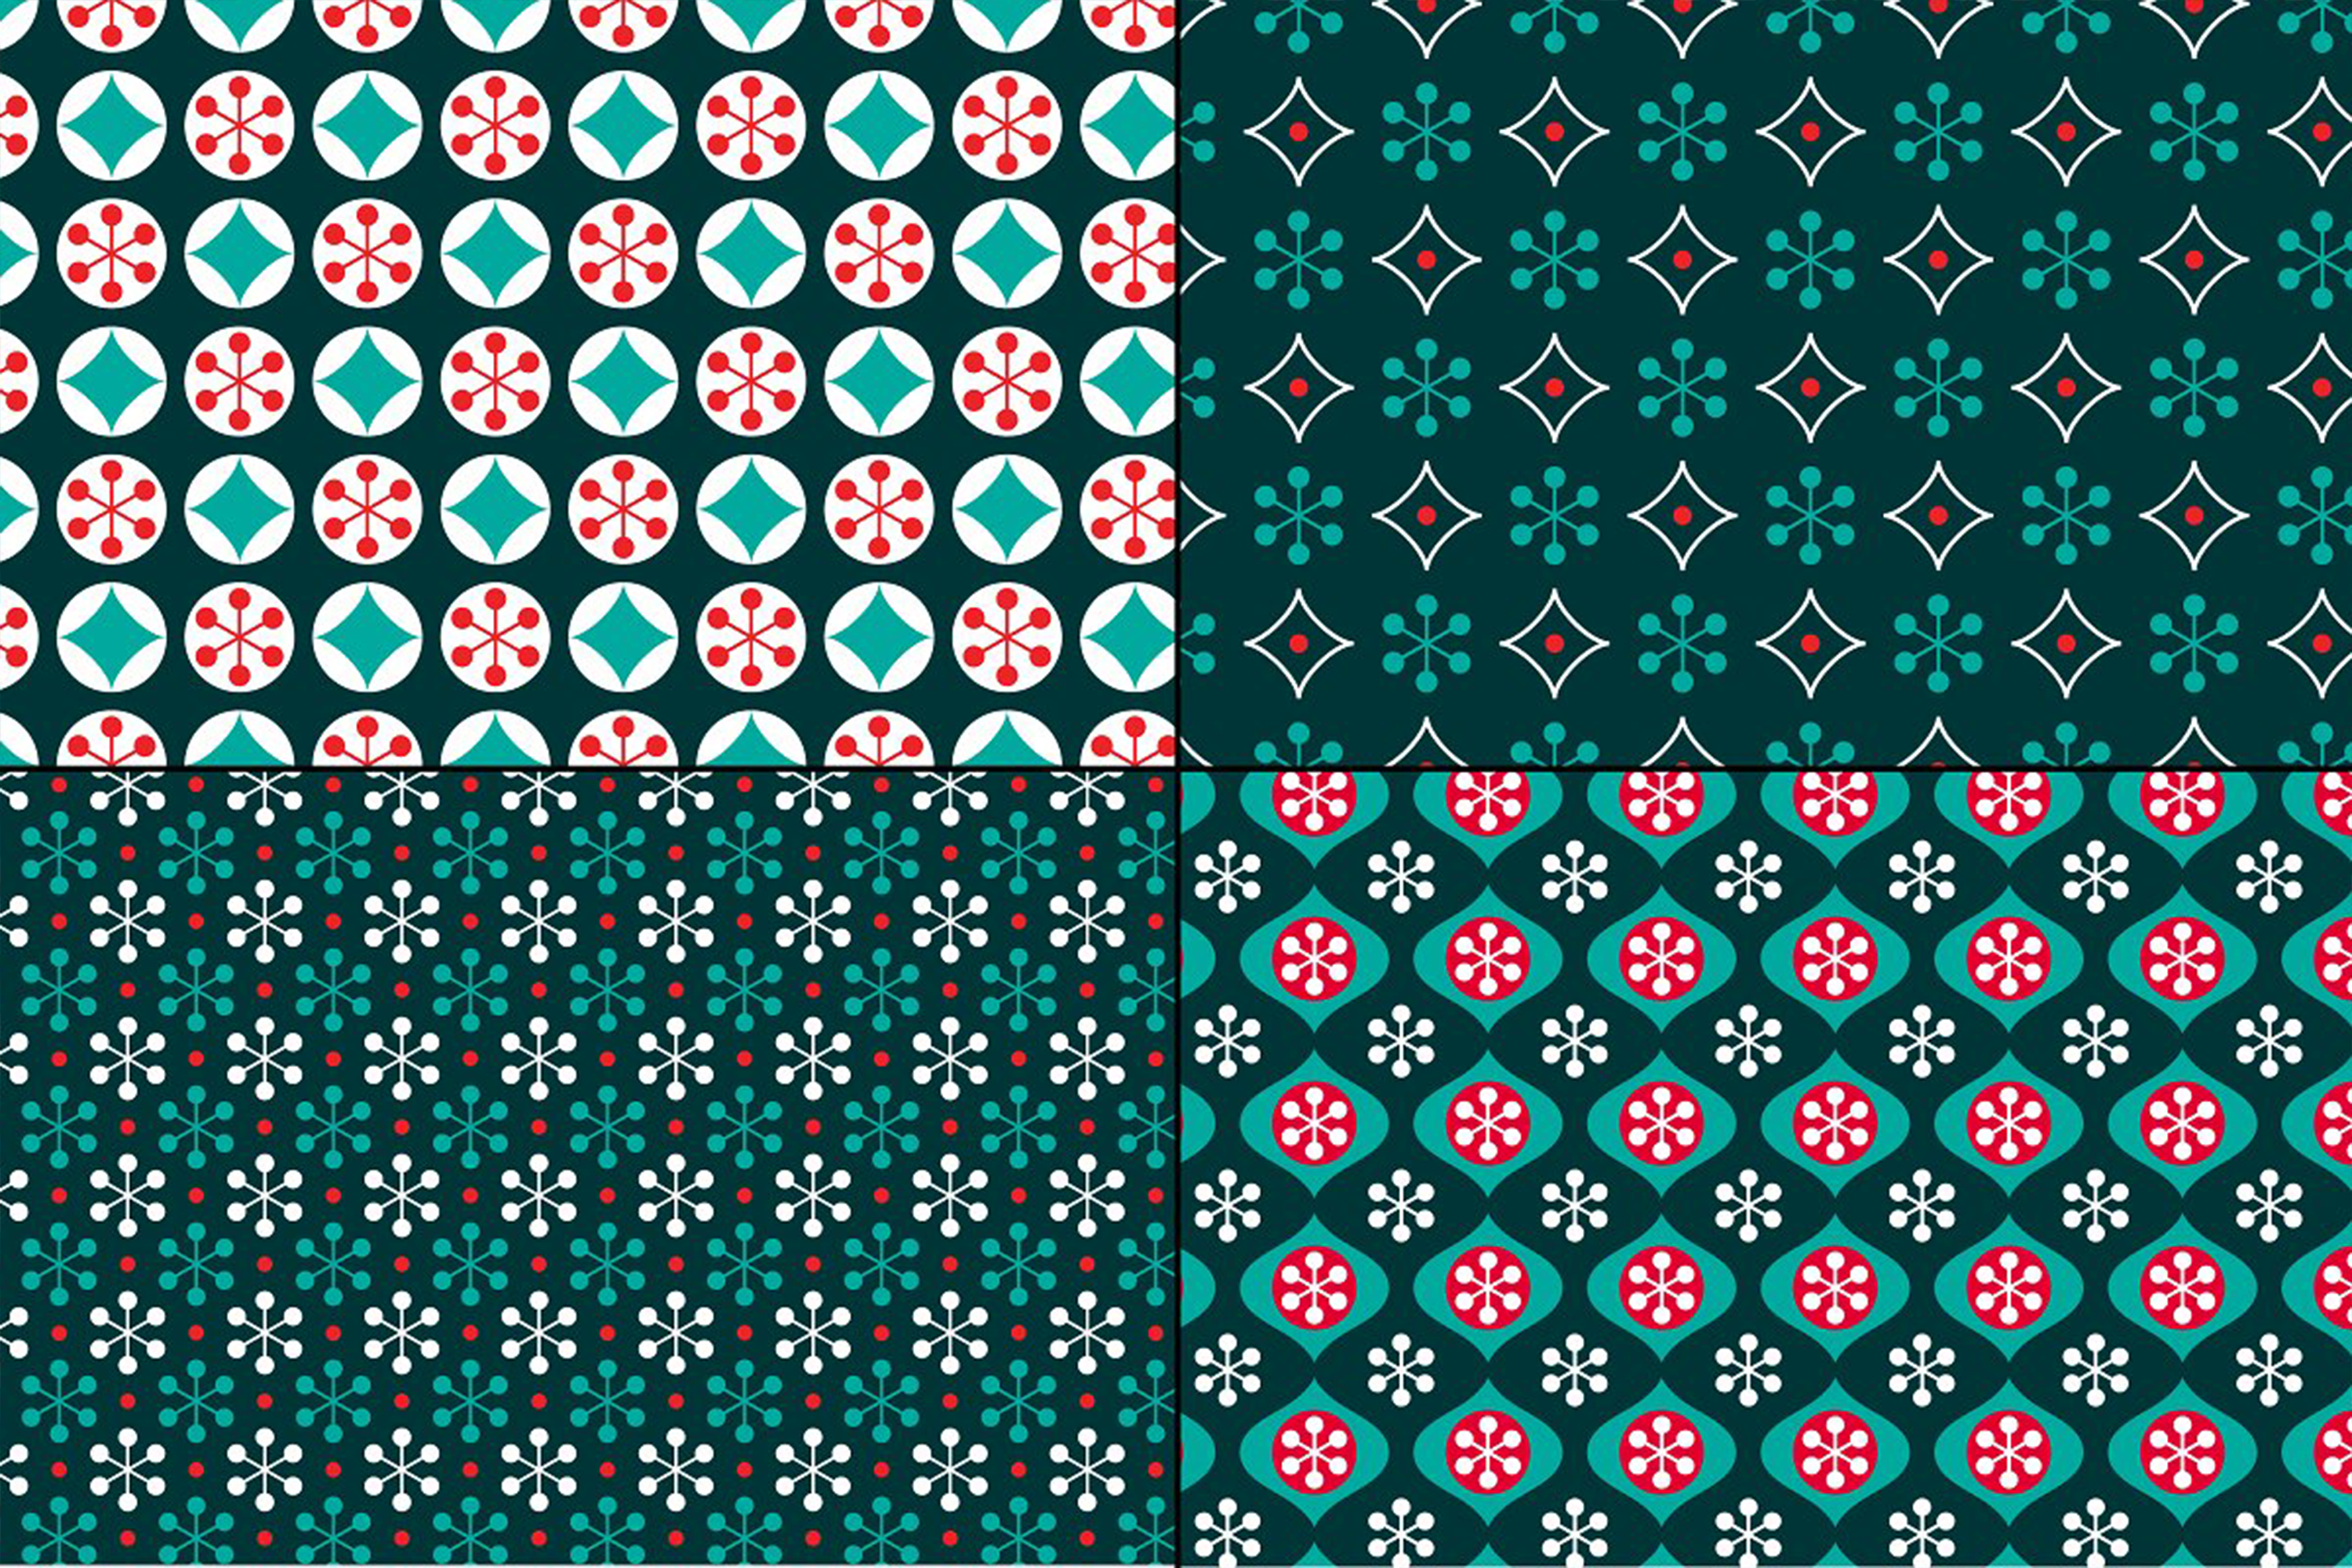 Small Seamless Holiday Patterns example image 2